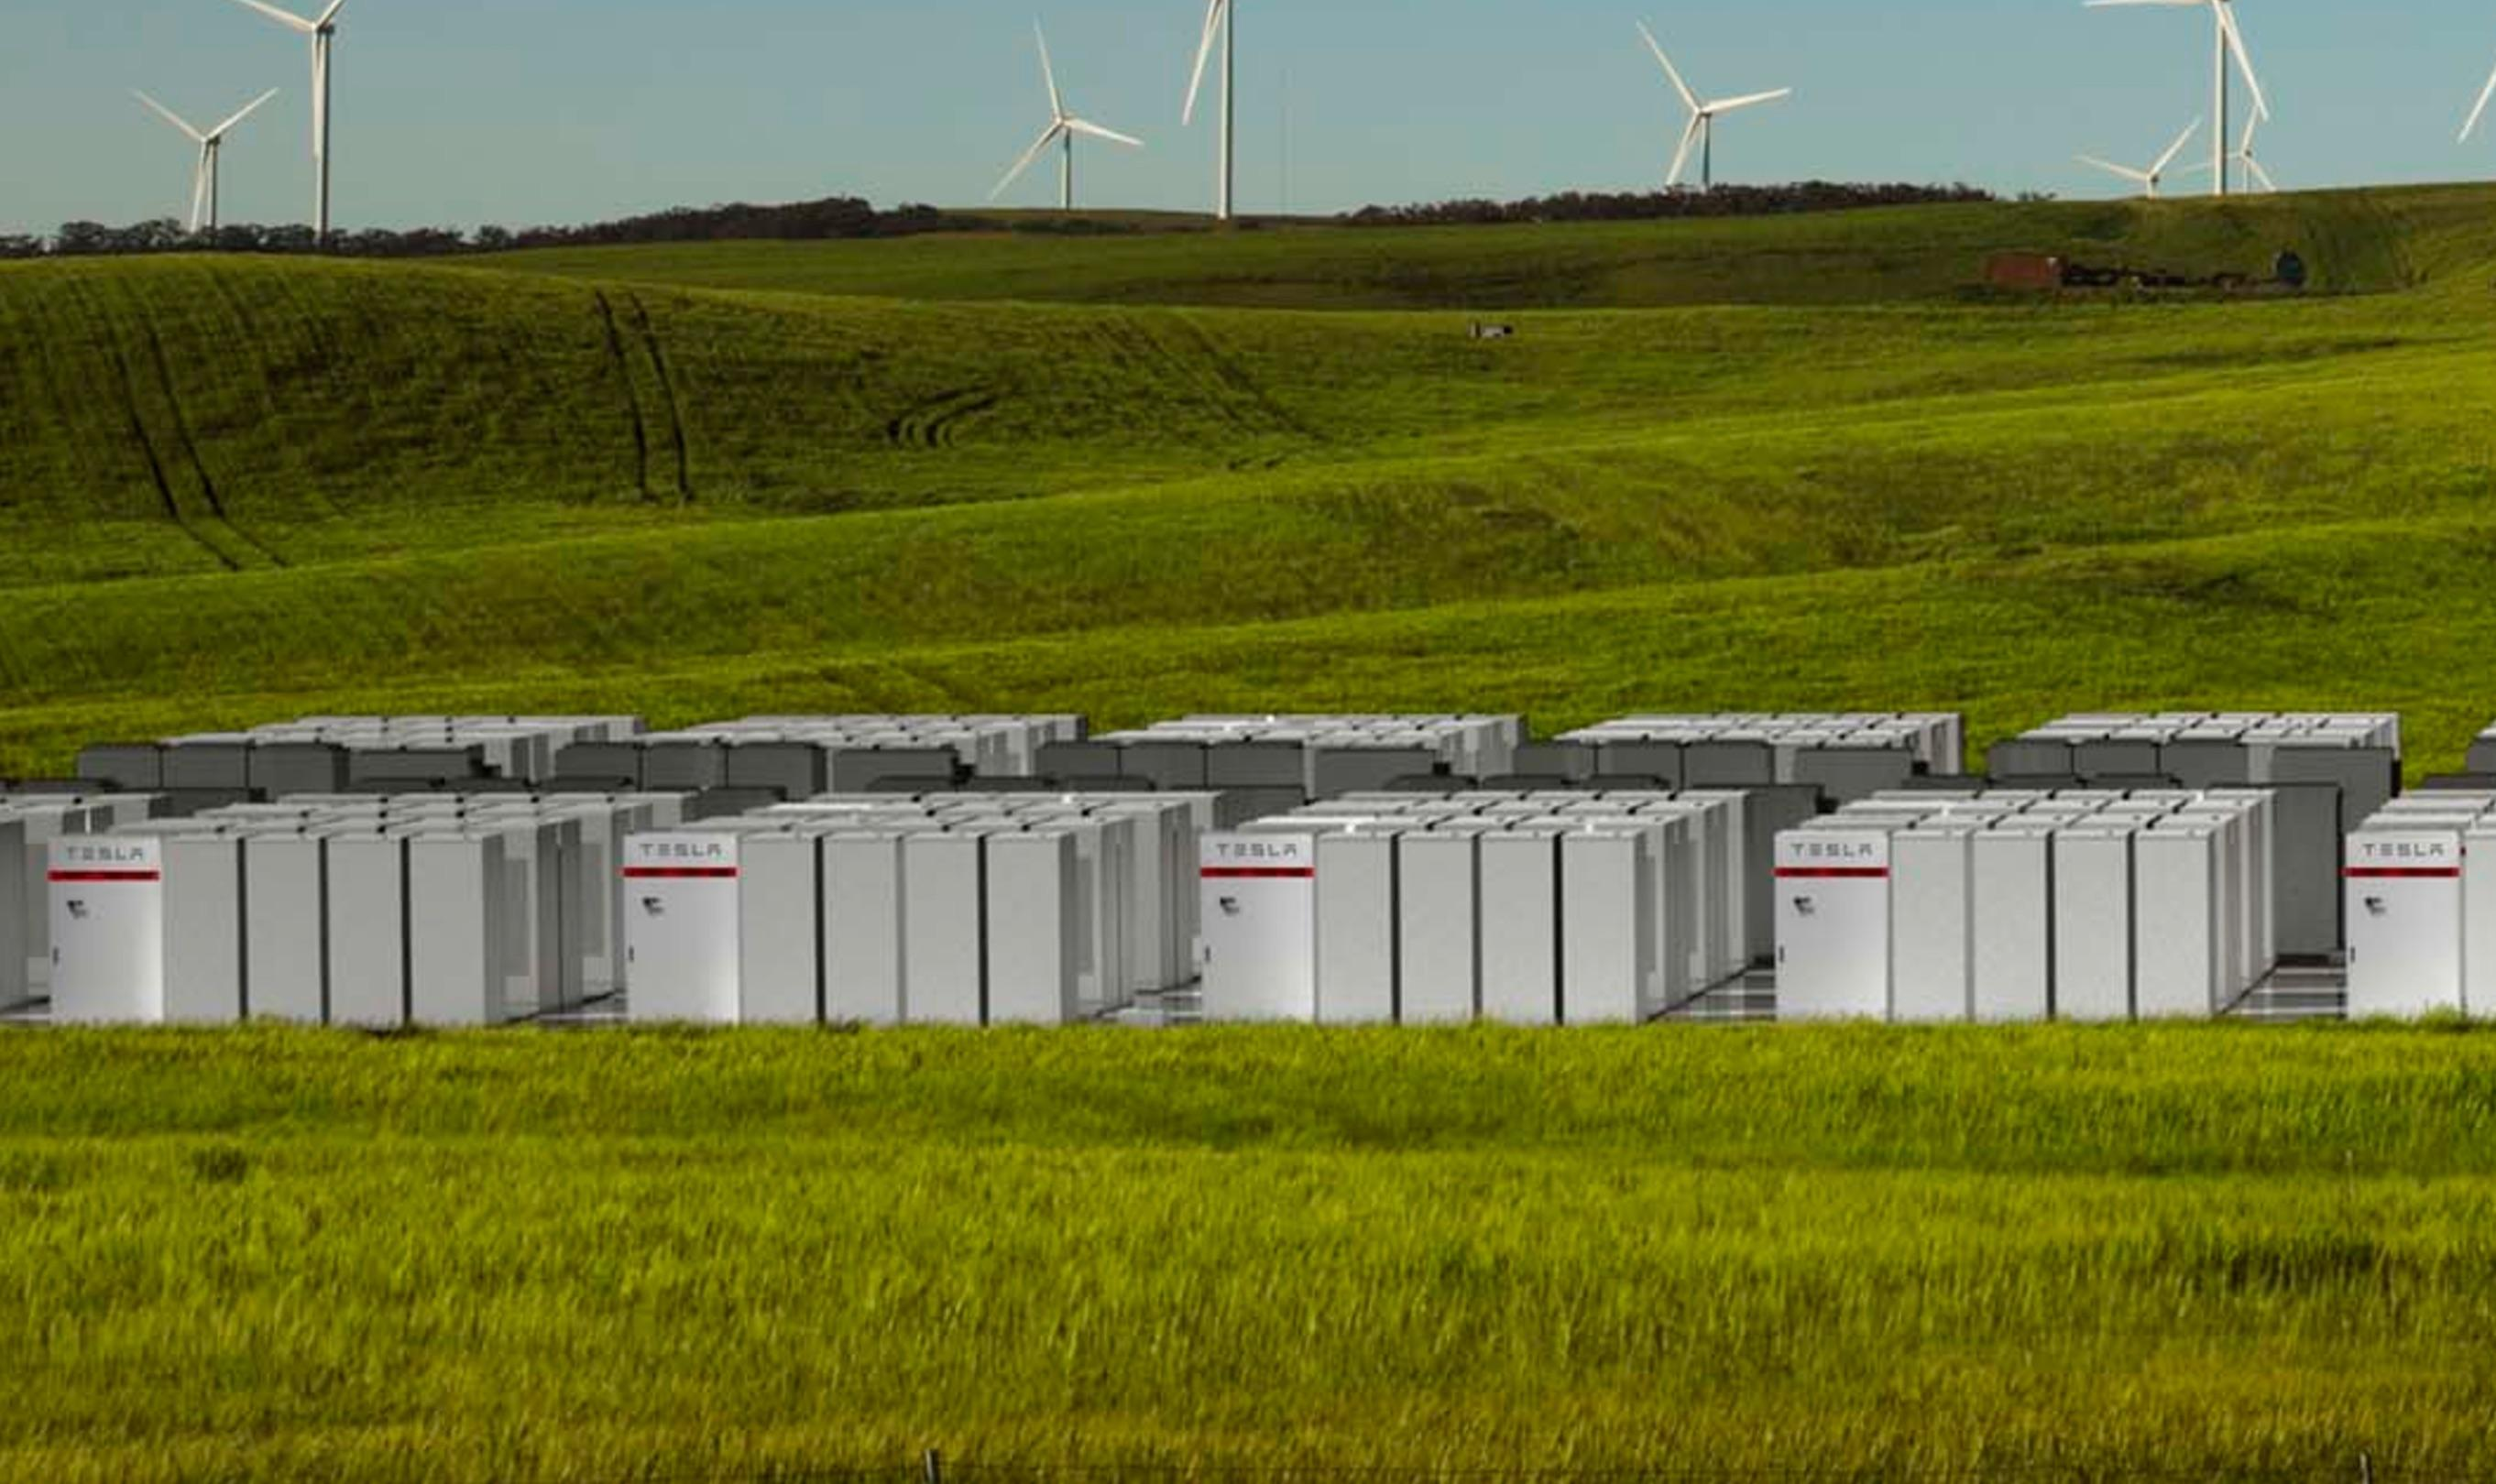 tesla-powerpack-wind-farm-south-australia-1-1542318553181-1542318555787.jpg